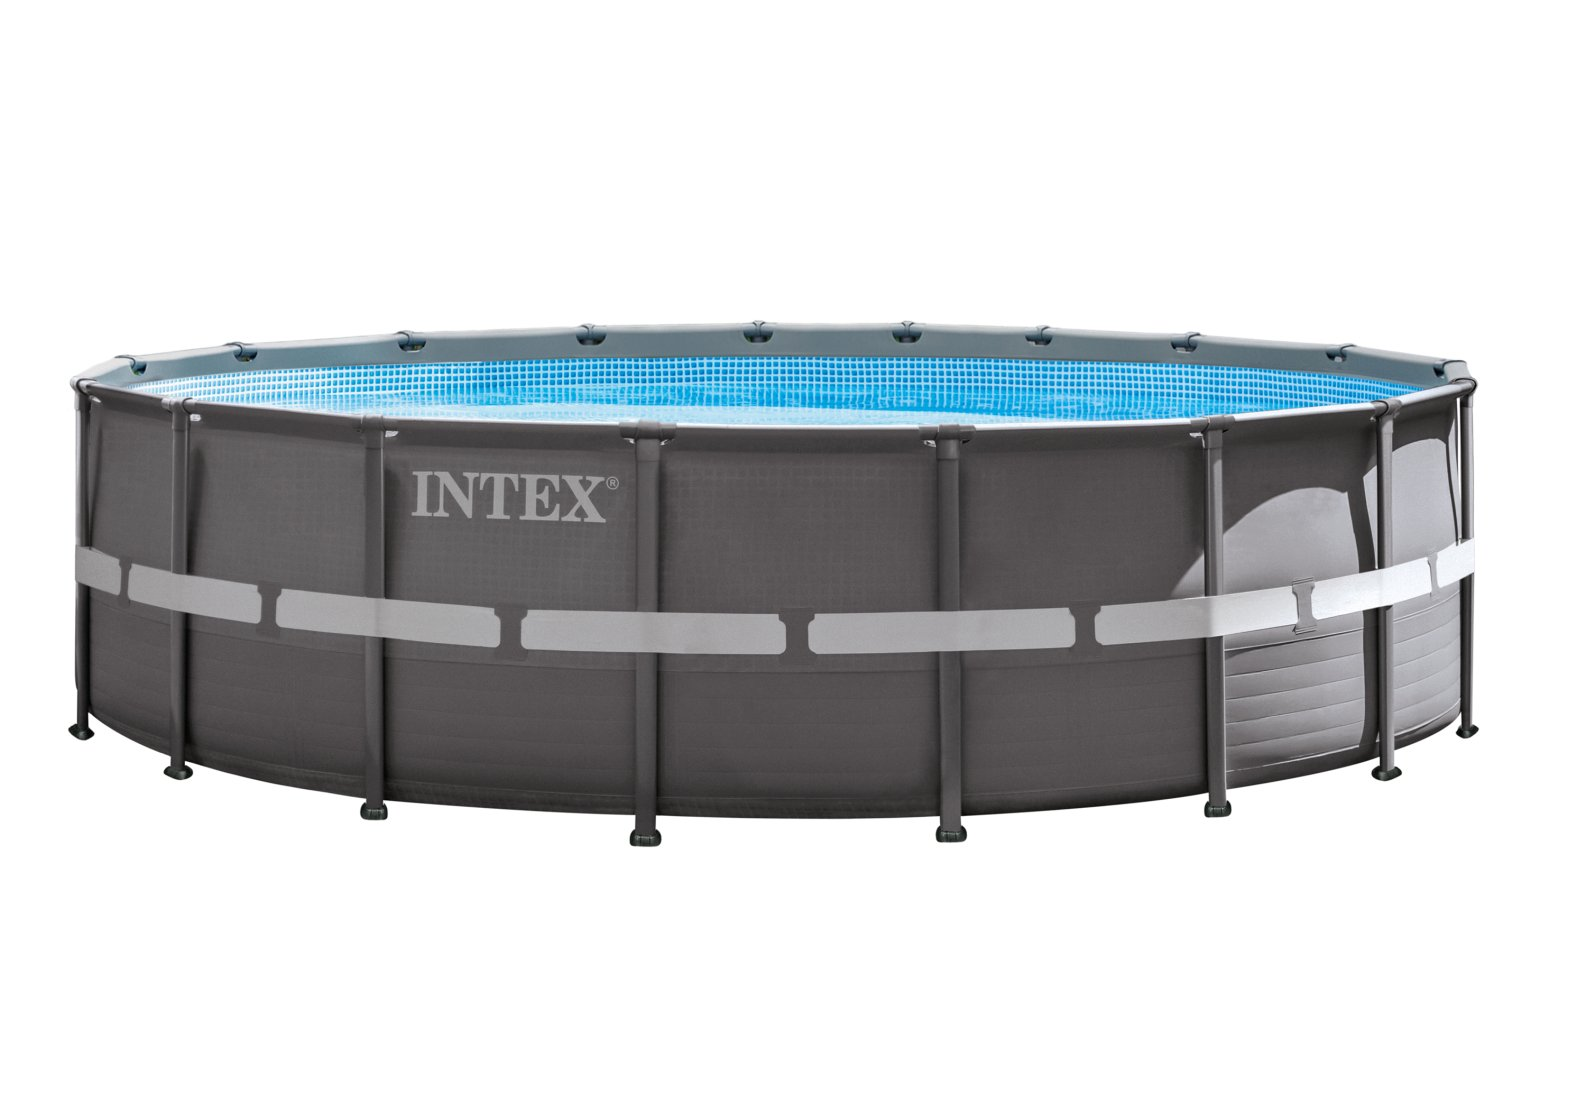 Piscina Intex Rotonda Piscina Fuori Terra Intex 28336 Ultra Frame 43 Pompa